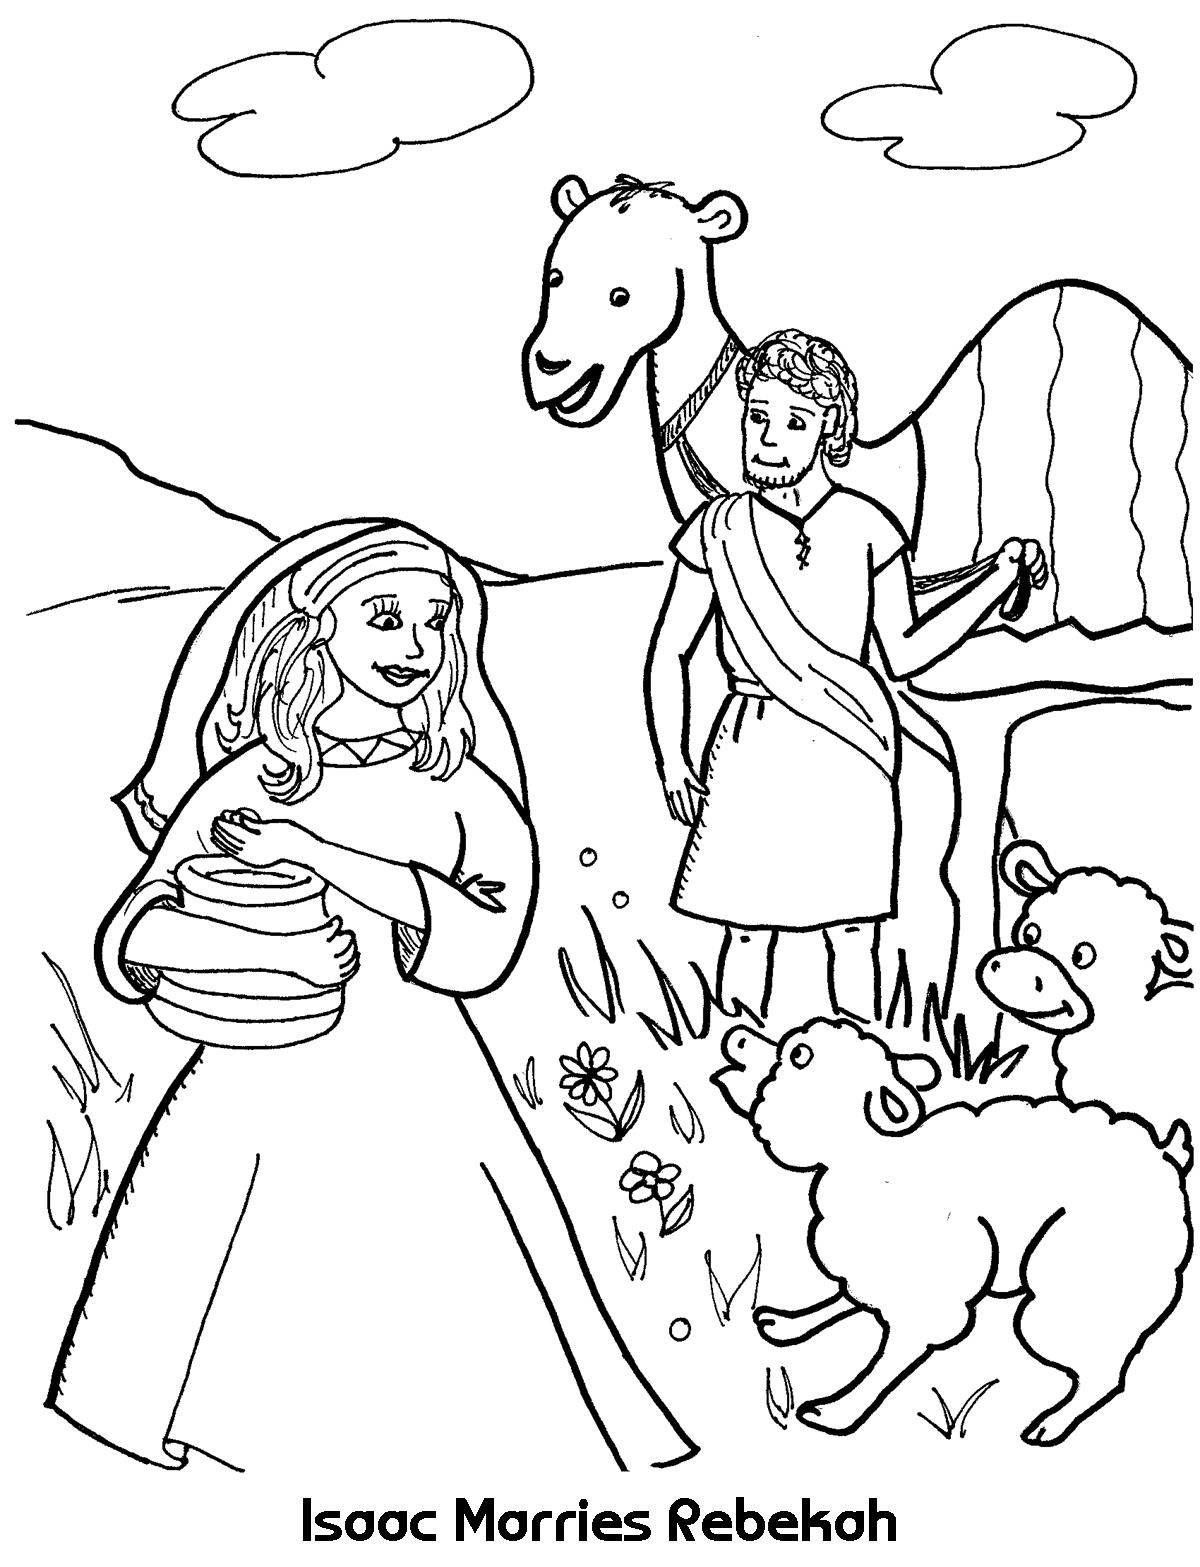 Isaac And Rebekah Coloring Pages Best Coloring Pages For Kids Sunday School Coloring Pages Bible Coloring Pages Abraham And Sarah